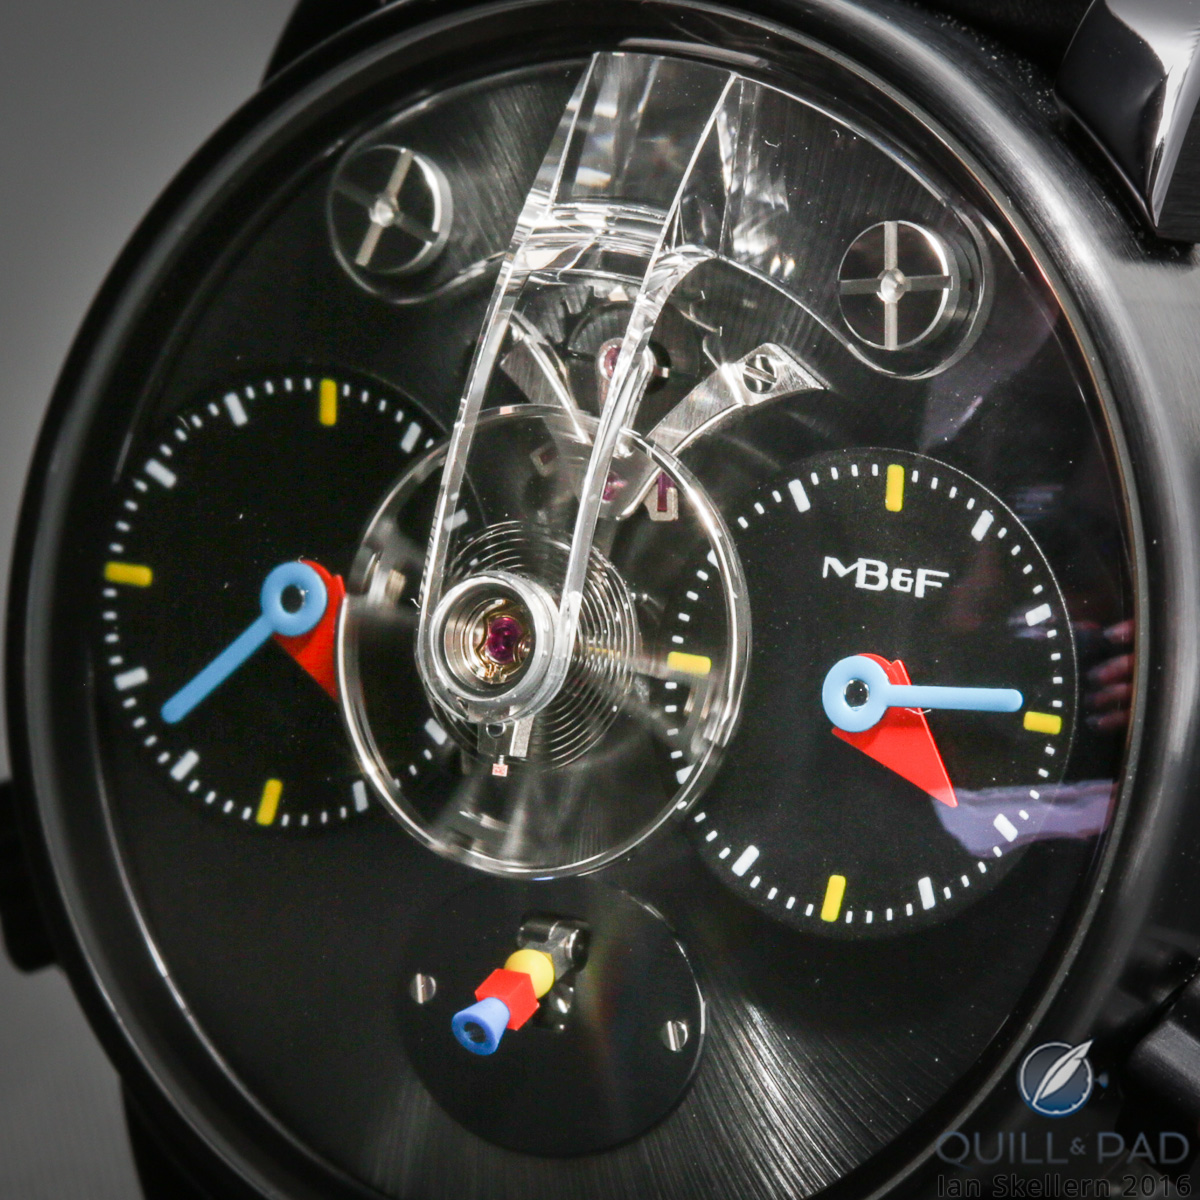 A close look at the dial side of the MB&F LM1 Silberstein in blackened titanium